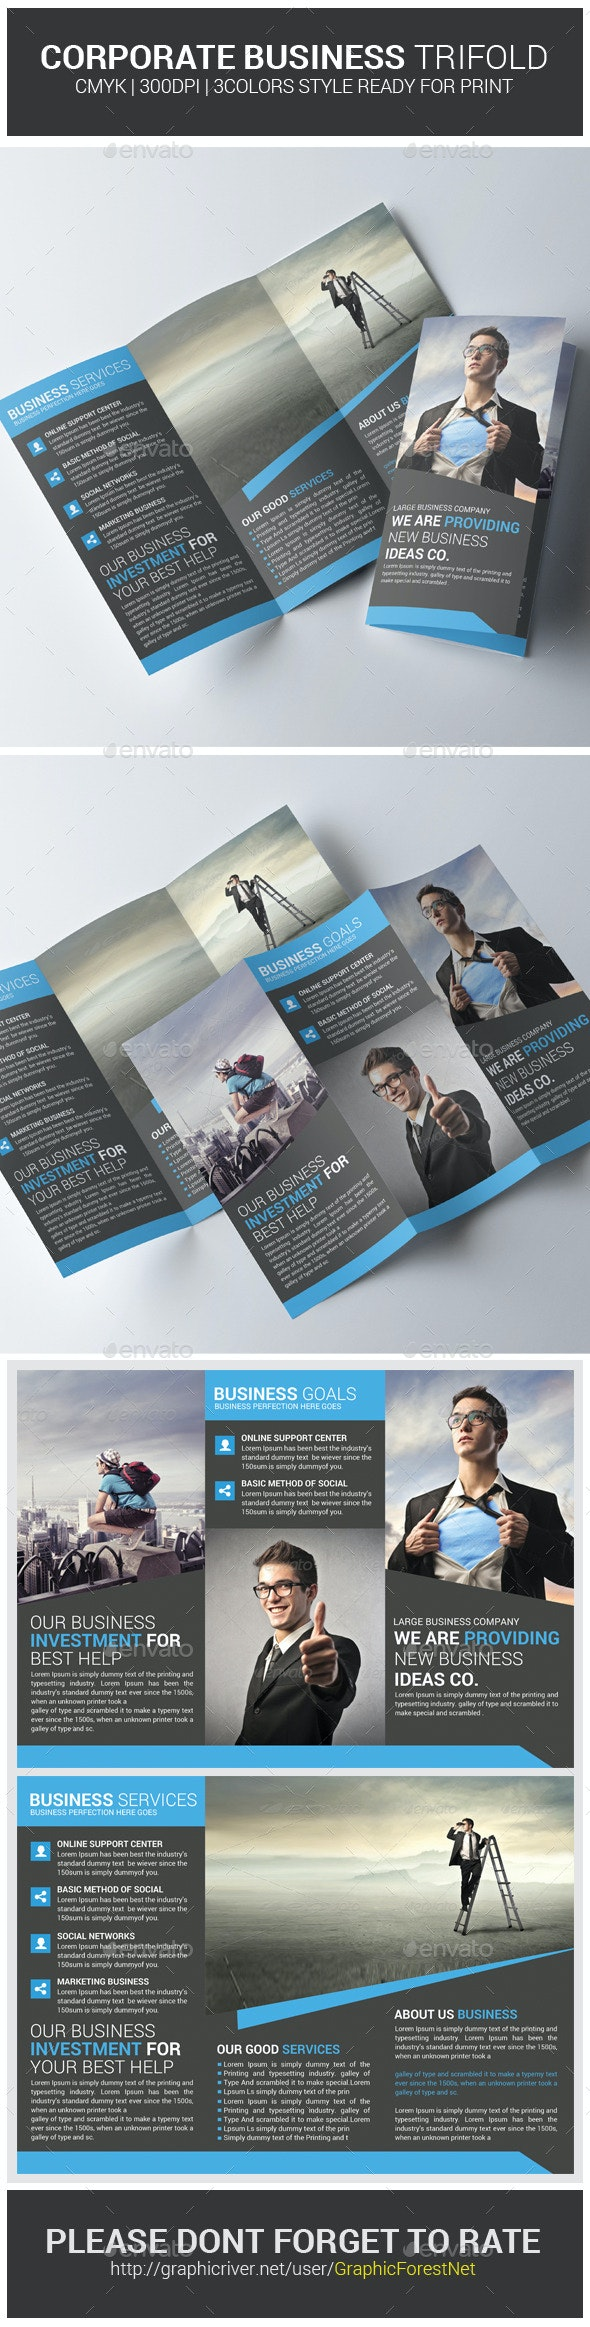 Business Trifold Brochure PSD Template - Corporate Brochures